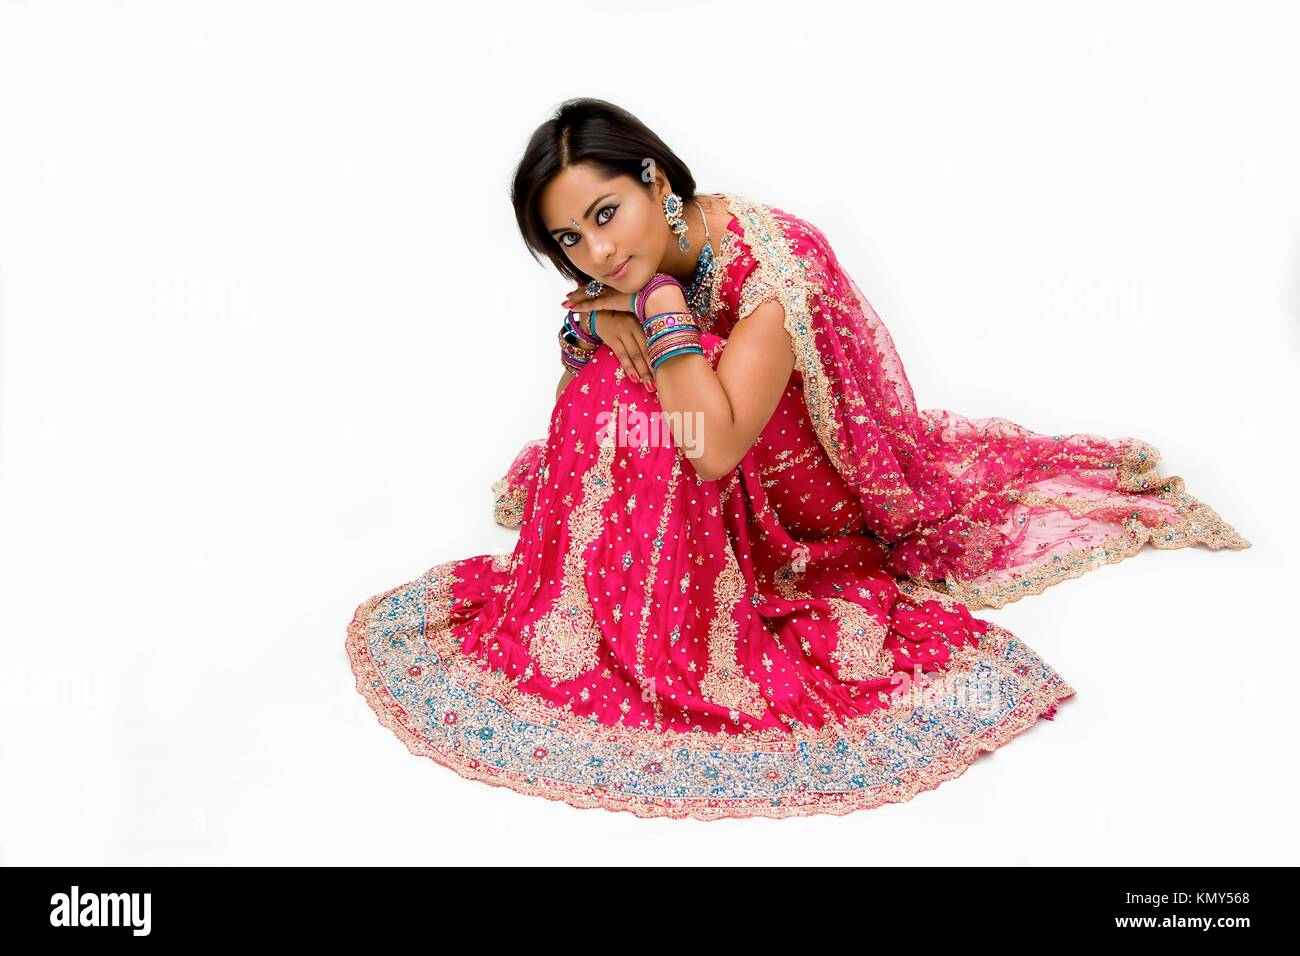 Beautiful Bangali bride in colorful dress sitting, isolated - Stock Image